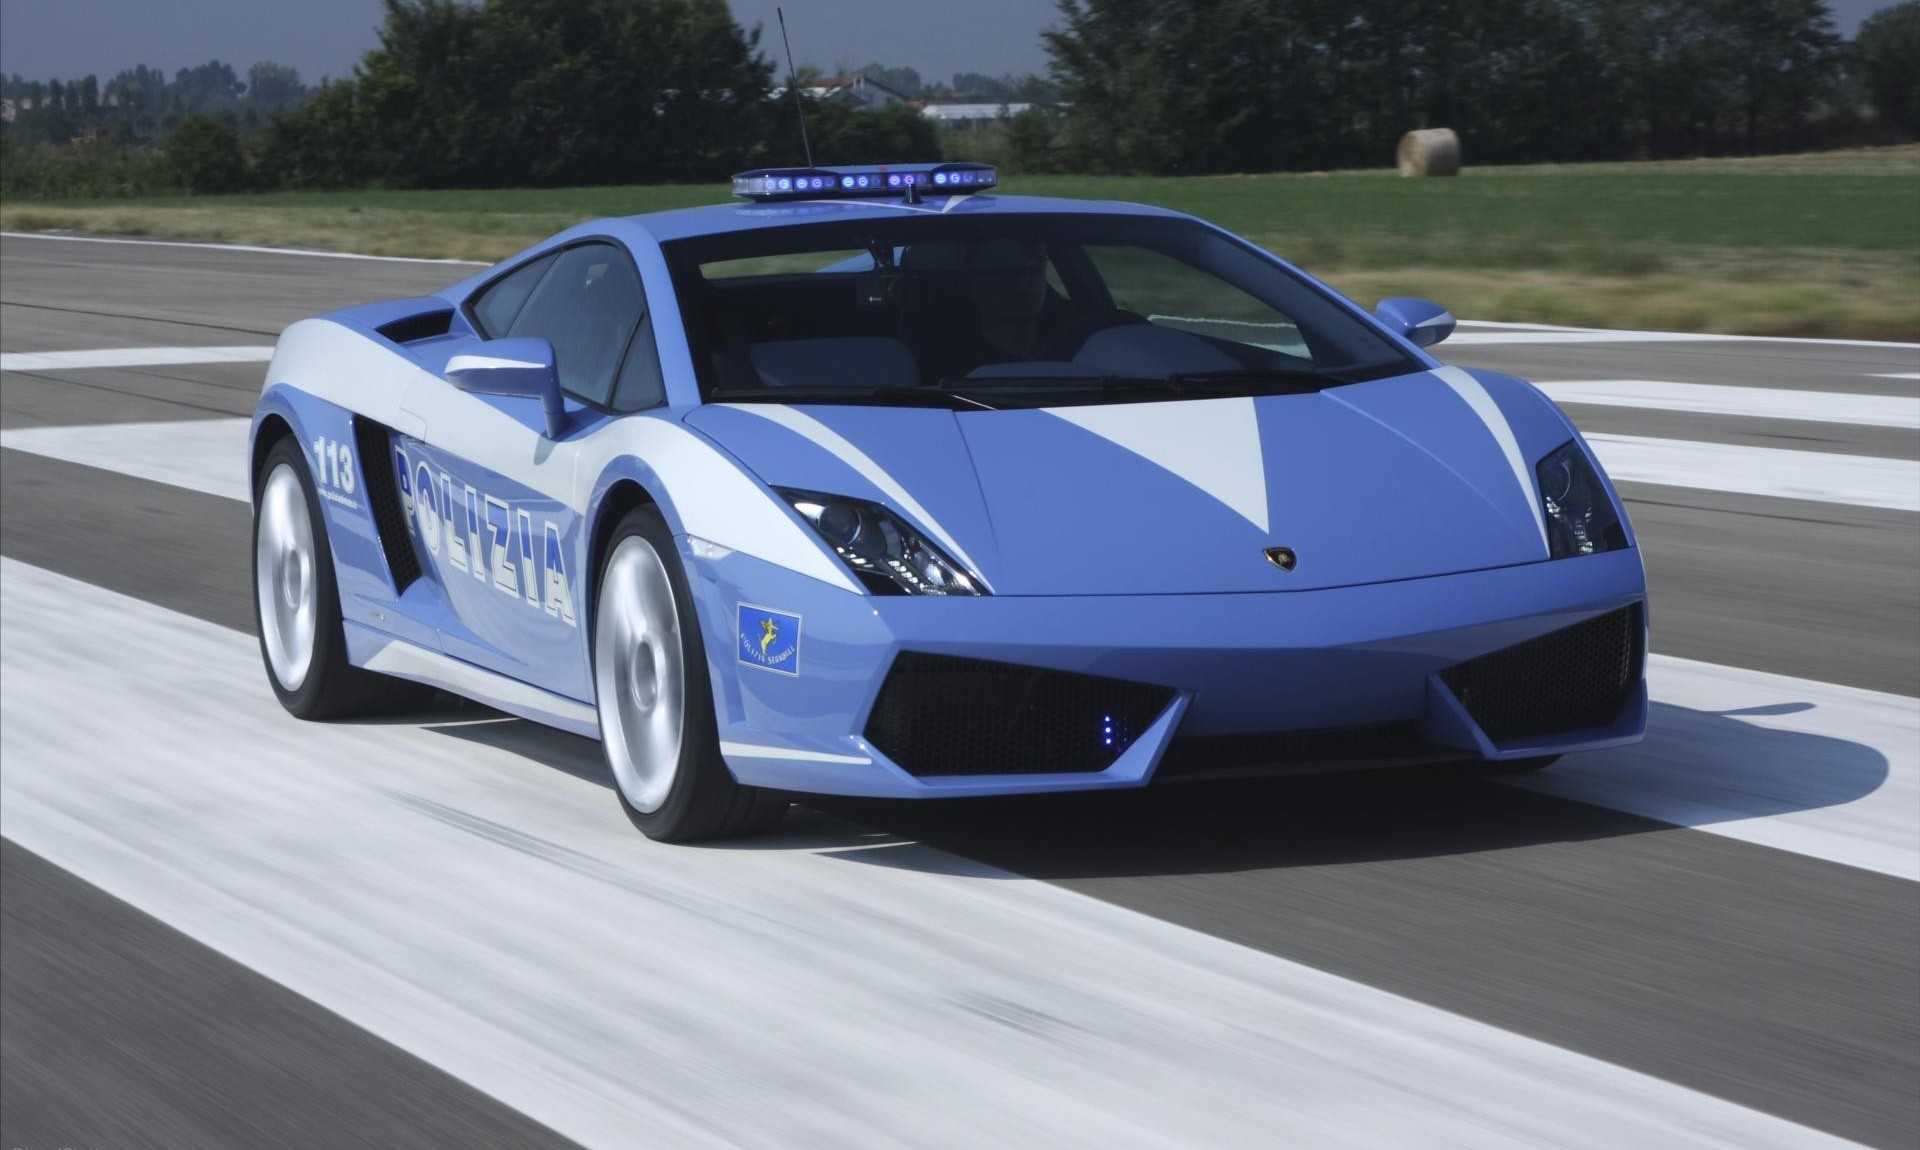 2018 Lamborghini Gallardo Police Car photo - 1